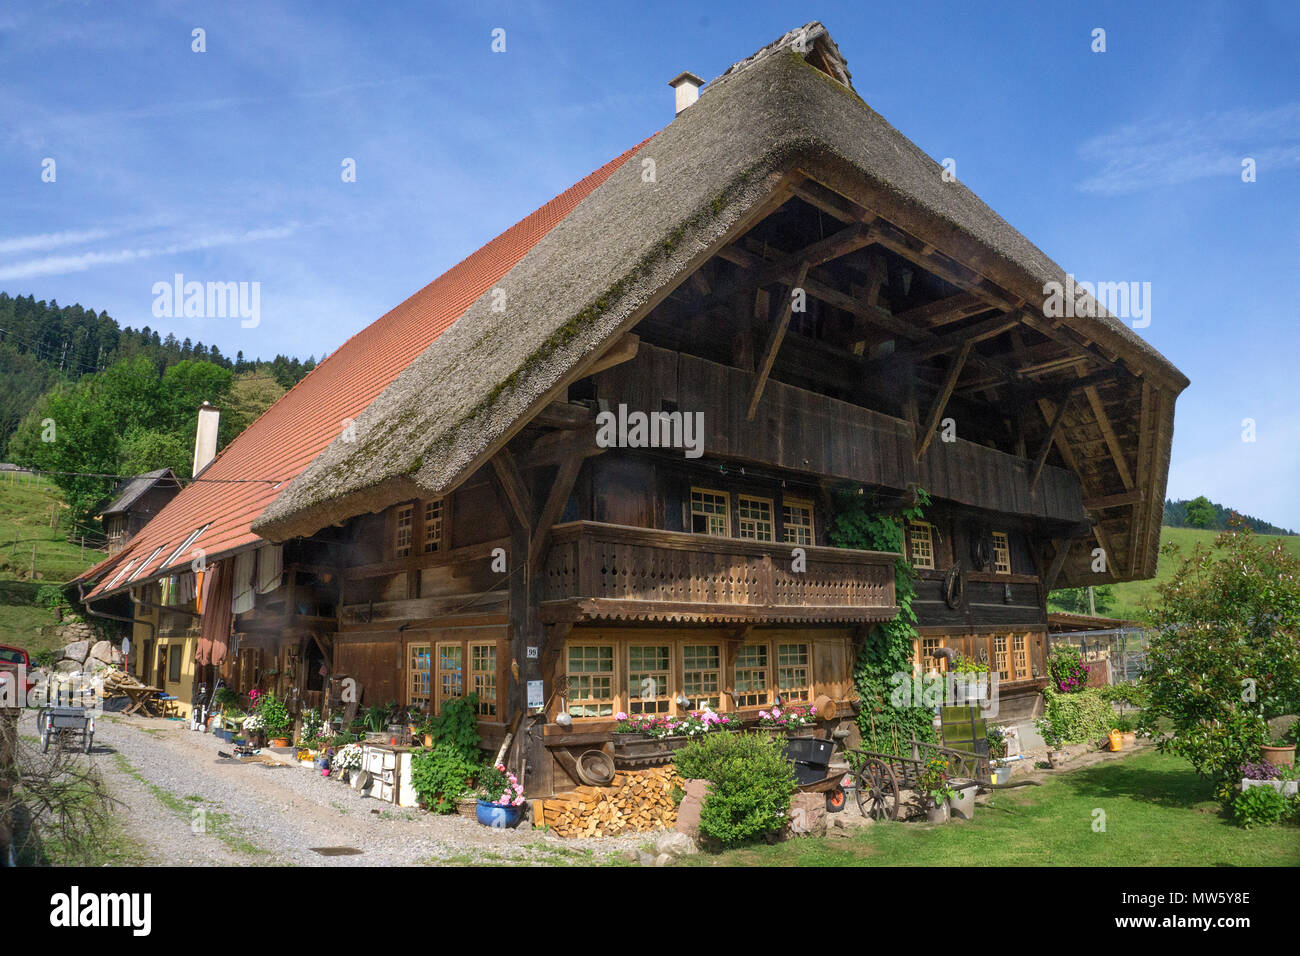 old farm house germany stock photos old farm house germany stock images alamy. Black Bedroom Furniture Sets. Home Design Ideas